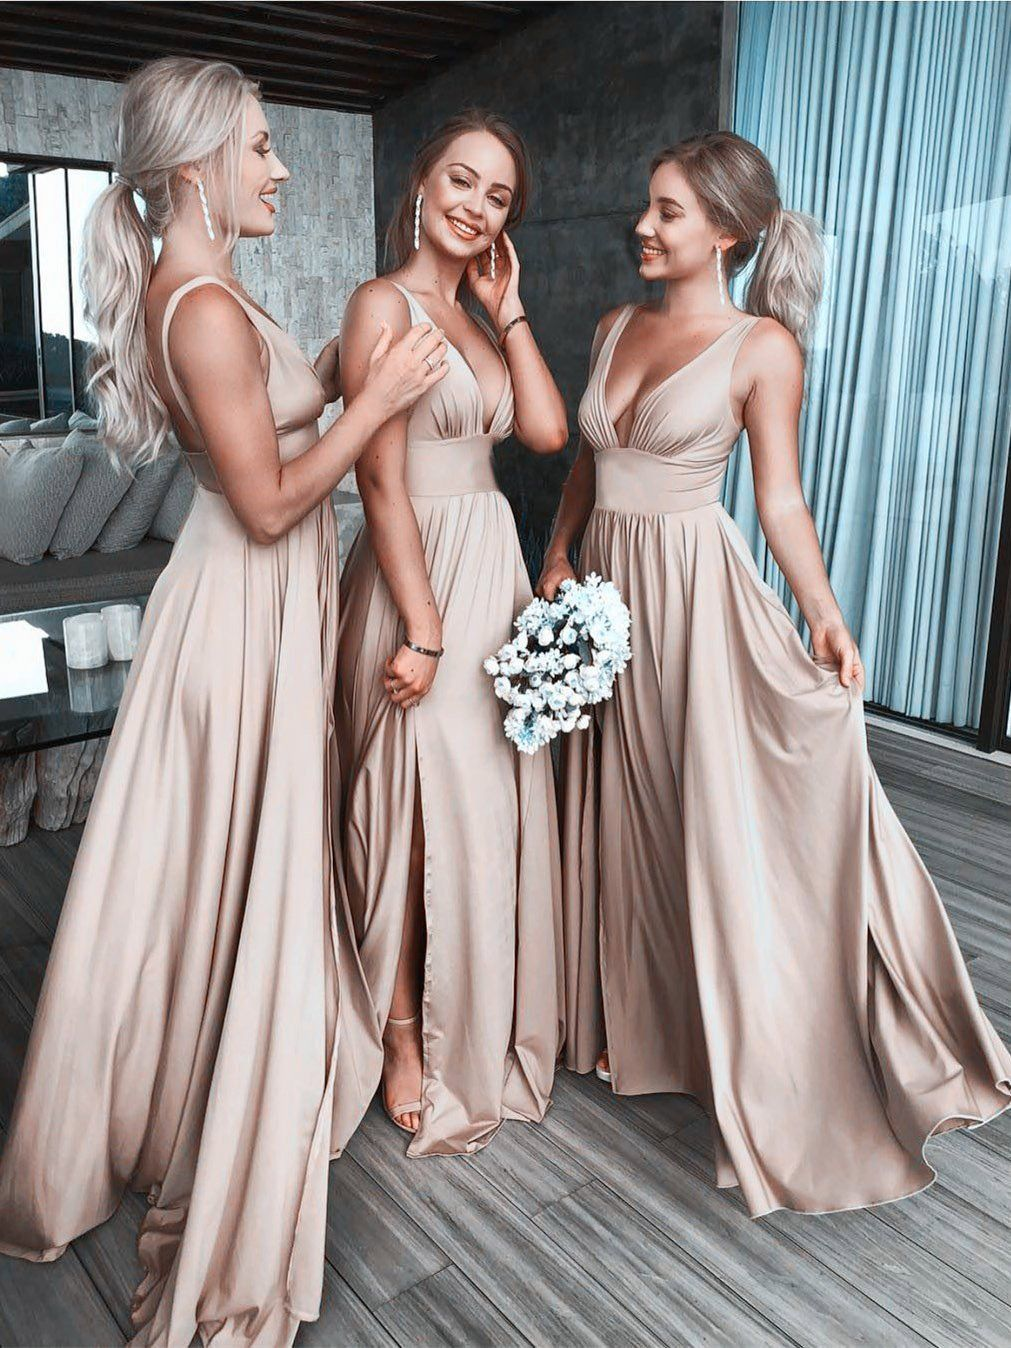 Sexy gold bridesmaid dresses v neck wedding guest dresses with slit